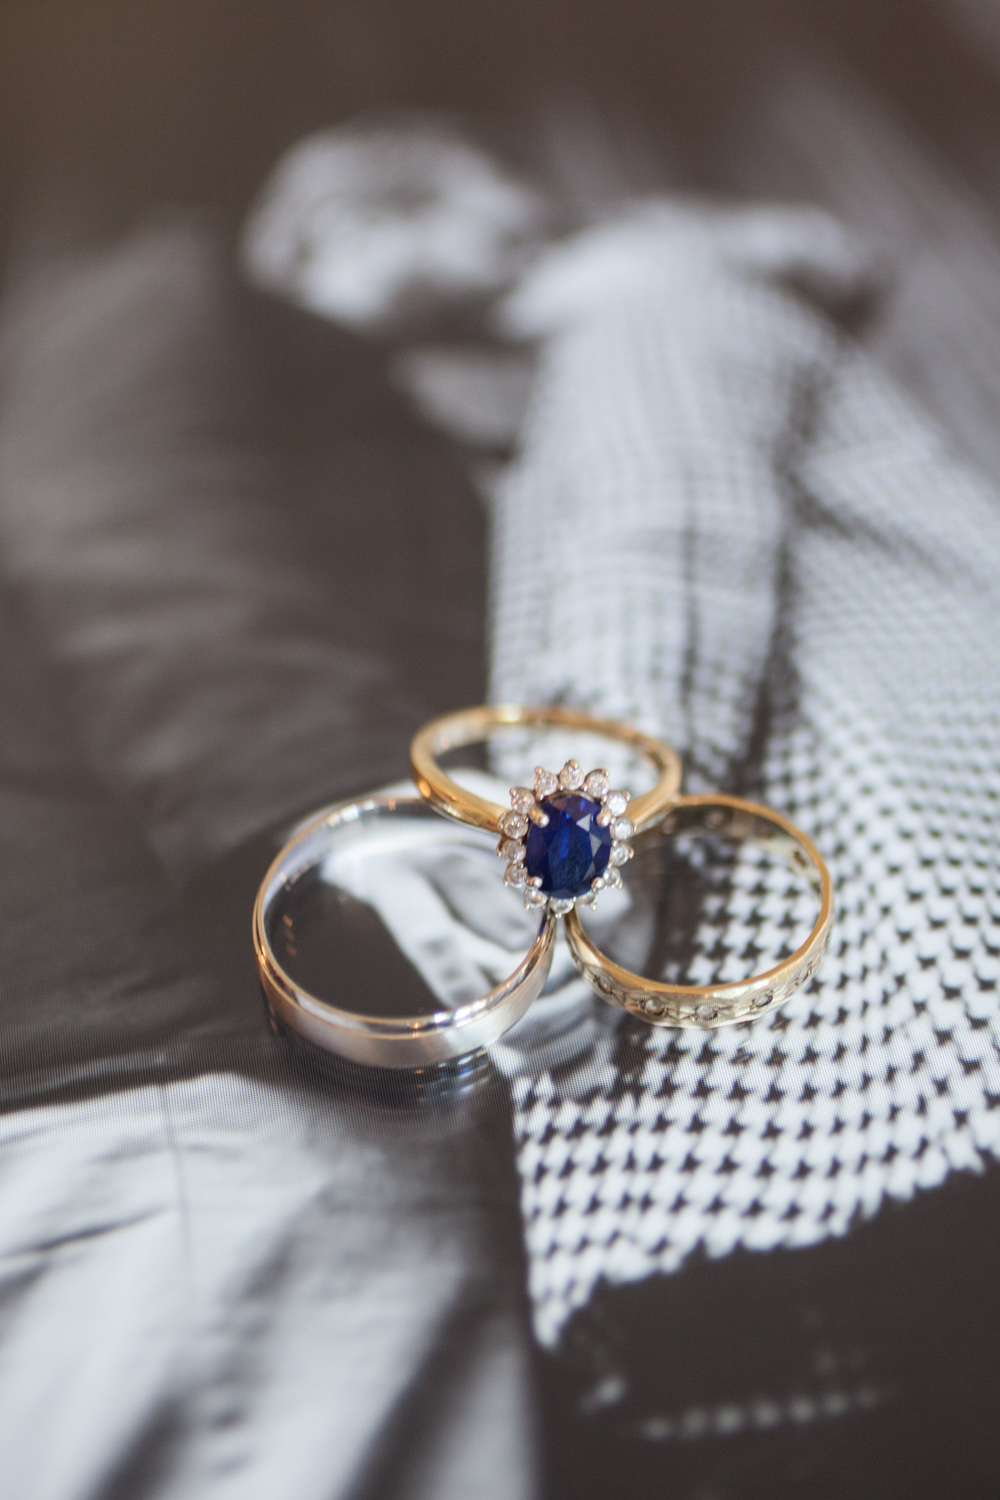 rmw-kate-holor-wedding-by-lee-allen-90-of-121